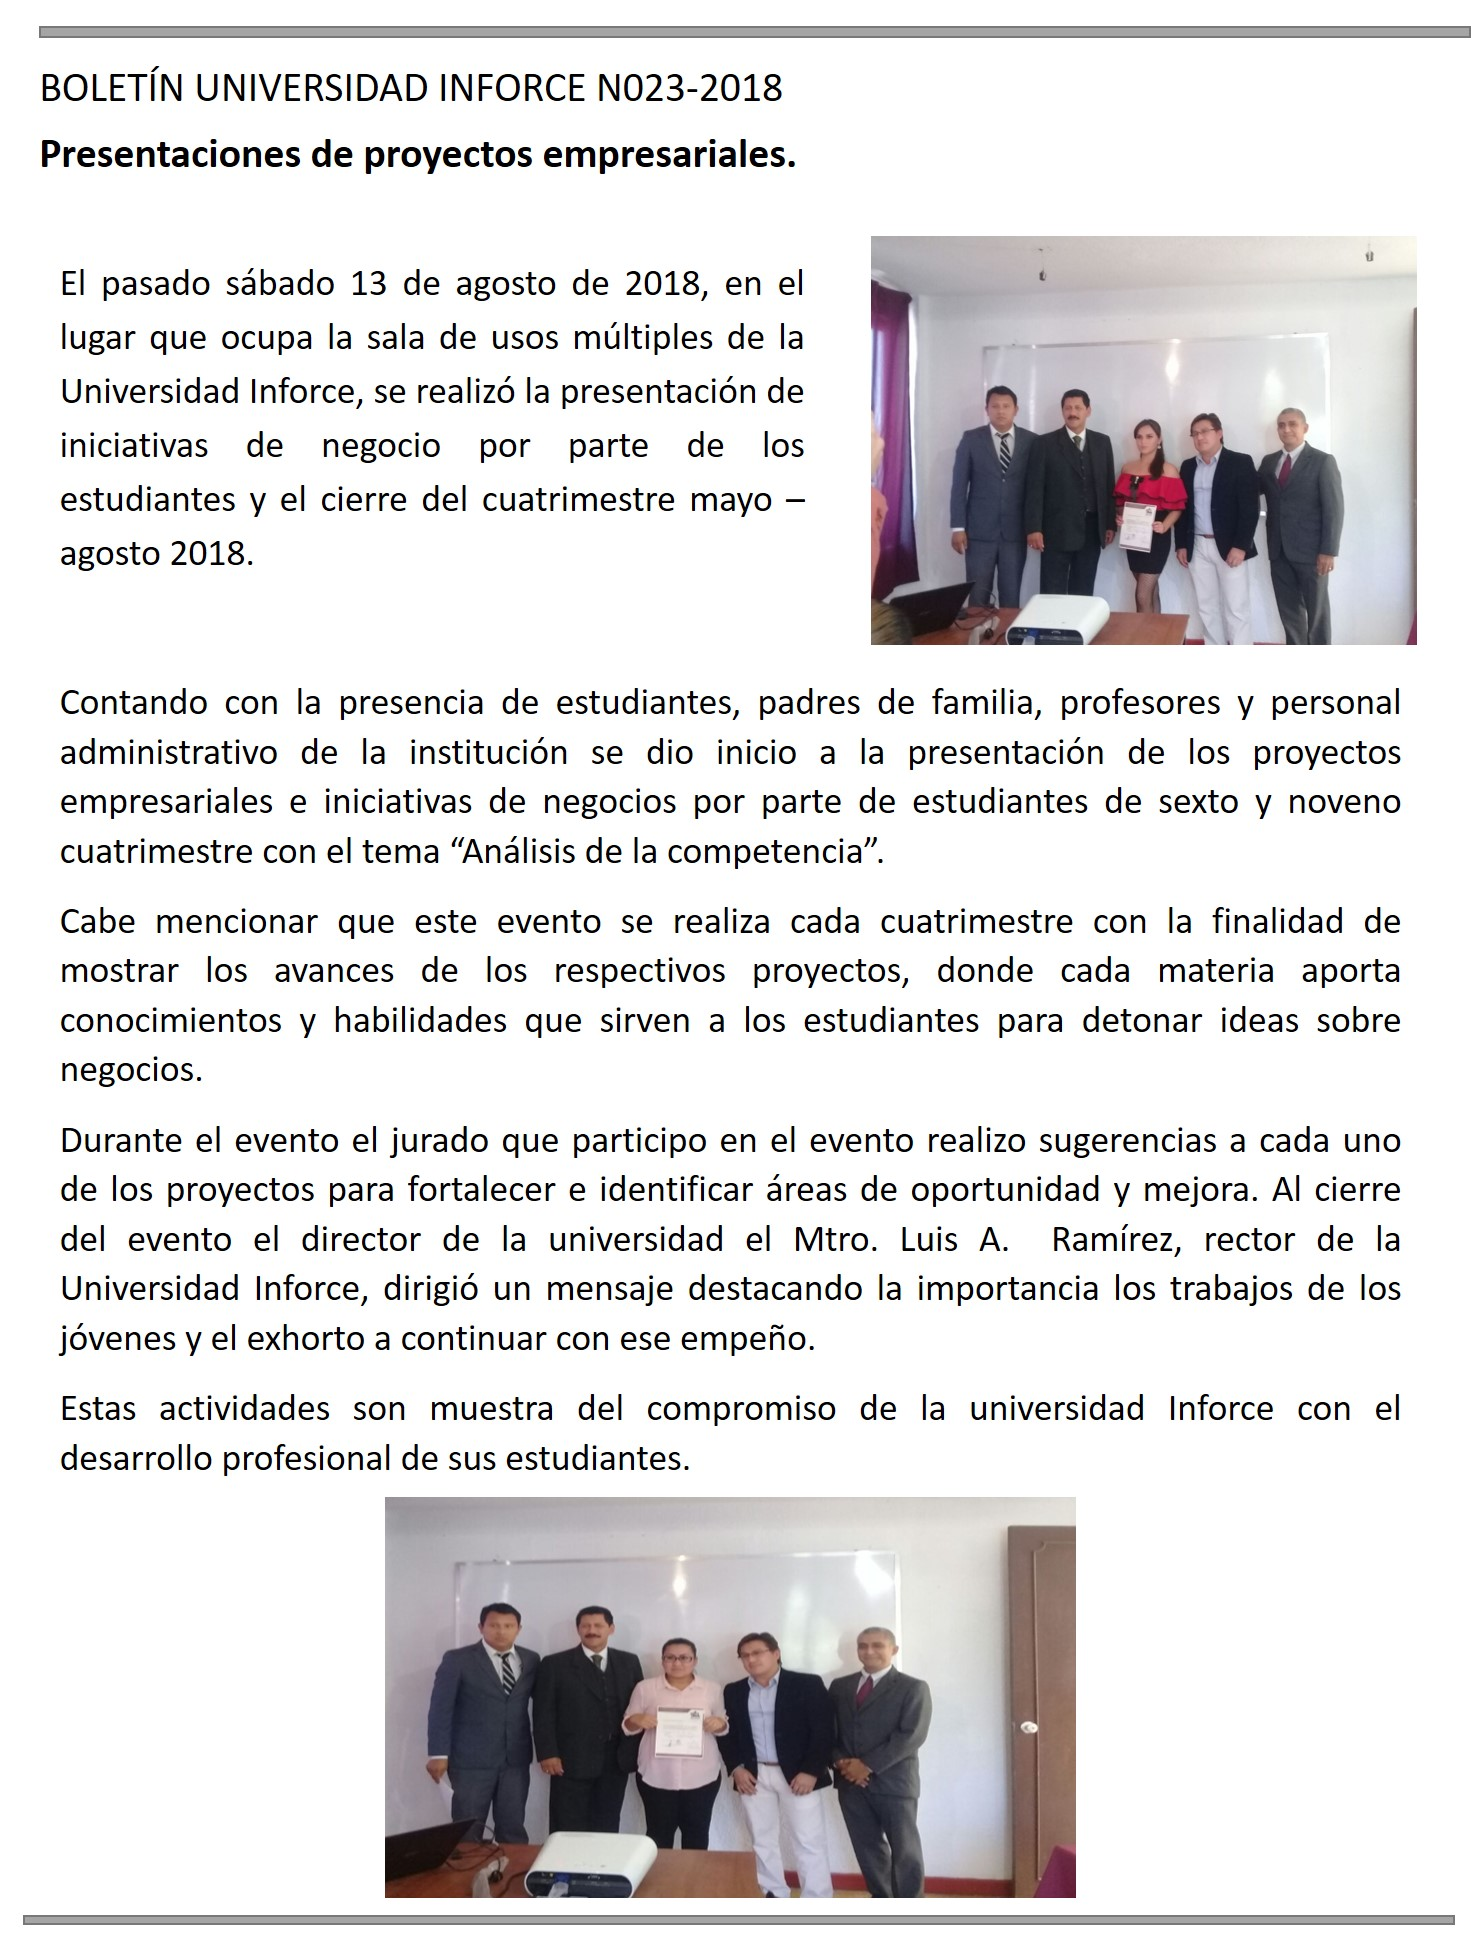 boletin-universidad-inforce-n023-2018.jpg